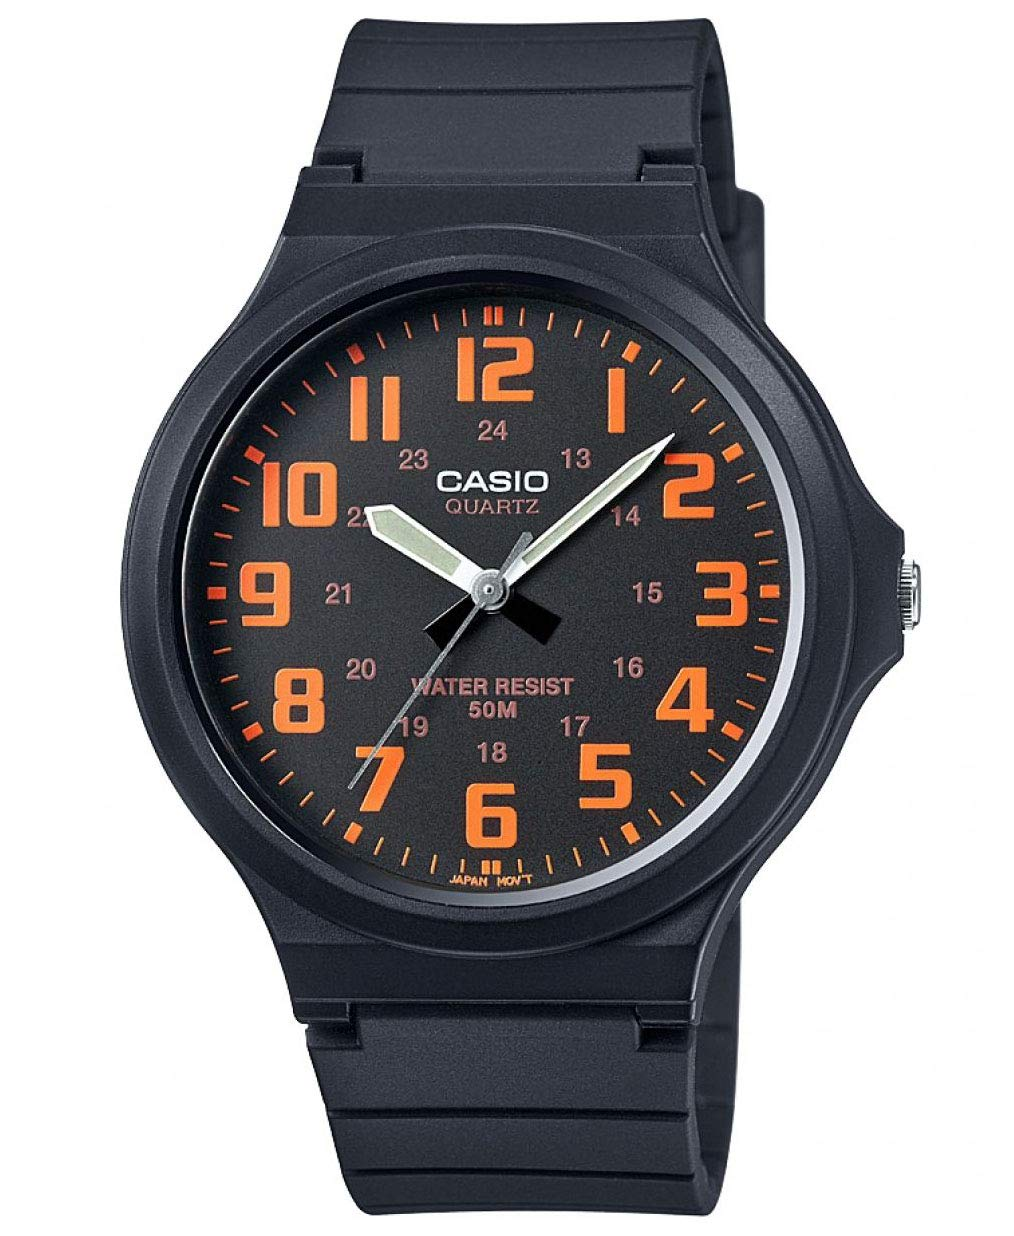 Casio Men's Watch in Resin/Acrylic Glass with Neo Display & Buckle – Water Resistant to 50 m